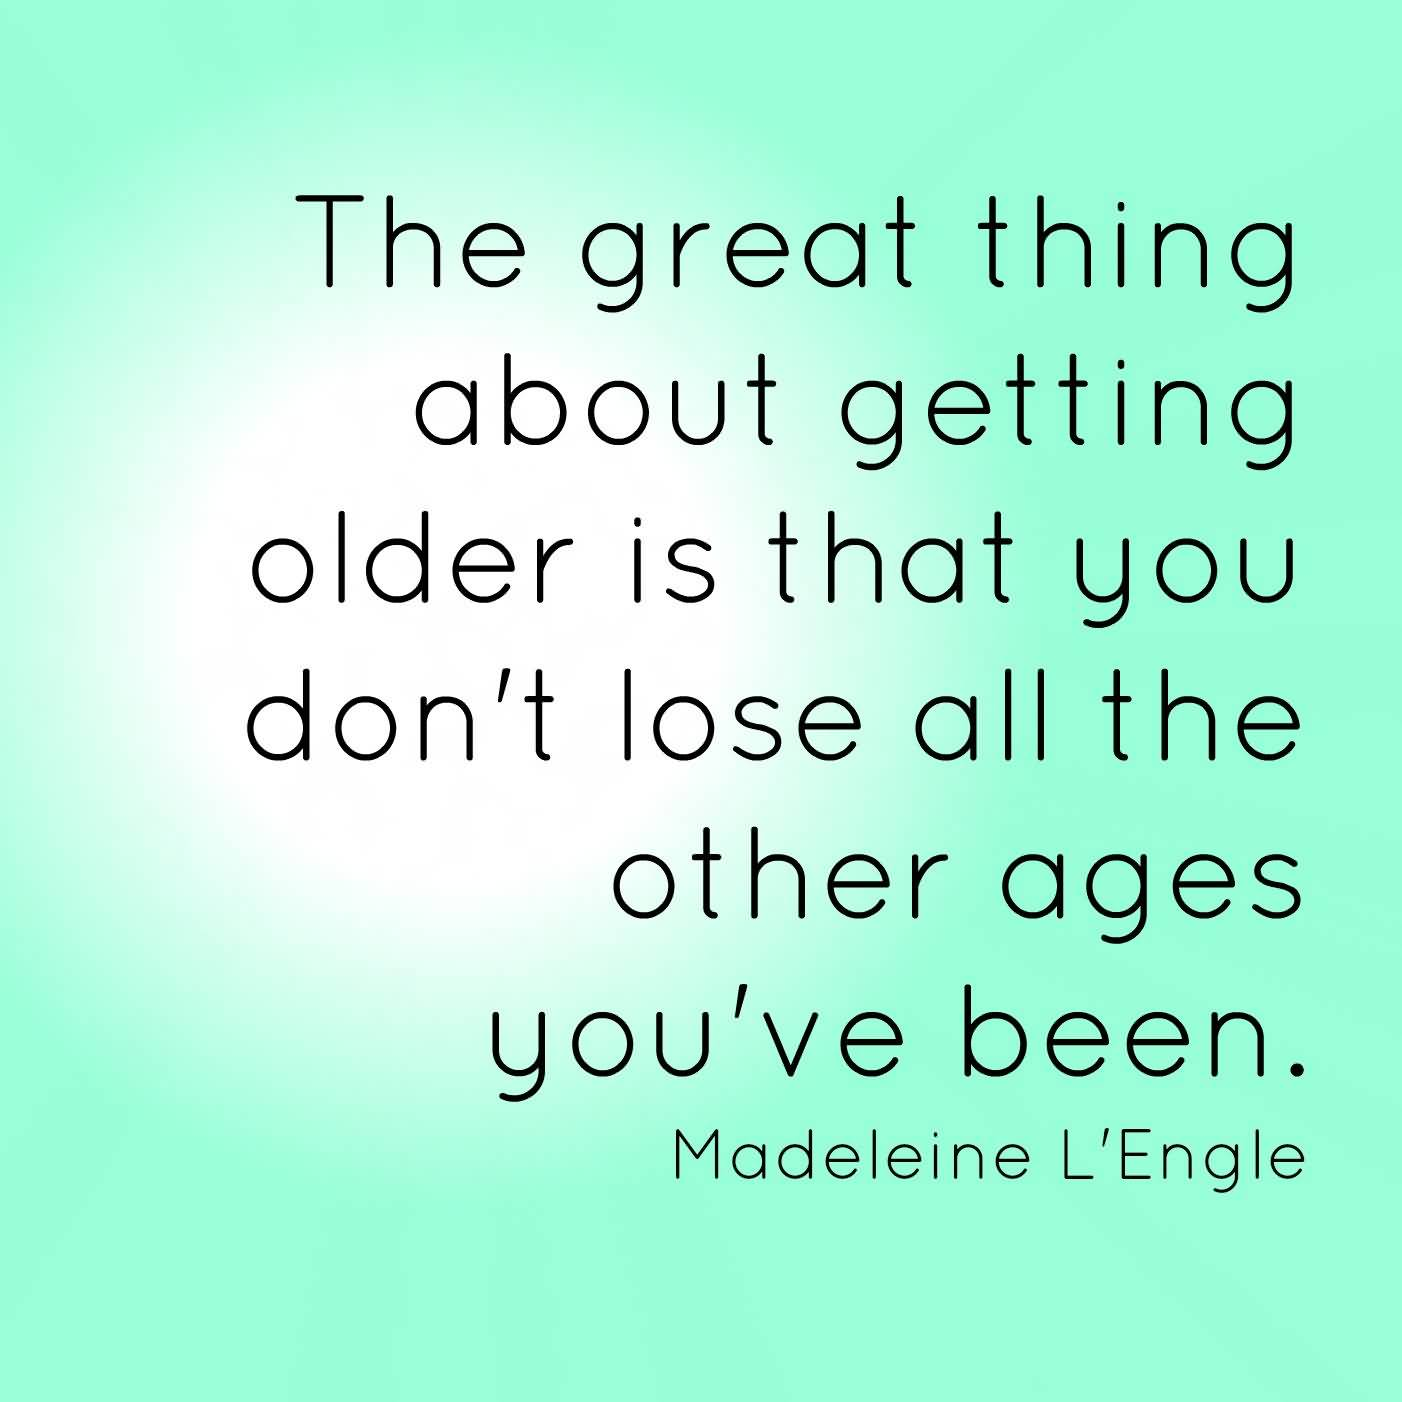 The Great Thing About Getting Older Is That You Don't Lose All The Other Ages You've Been Madeleine L'Engle